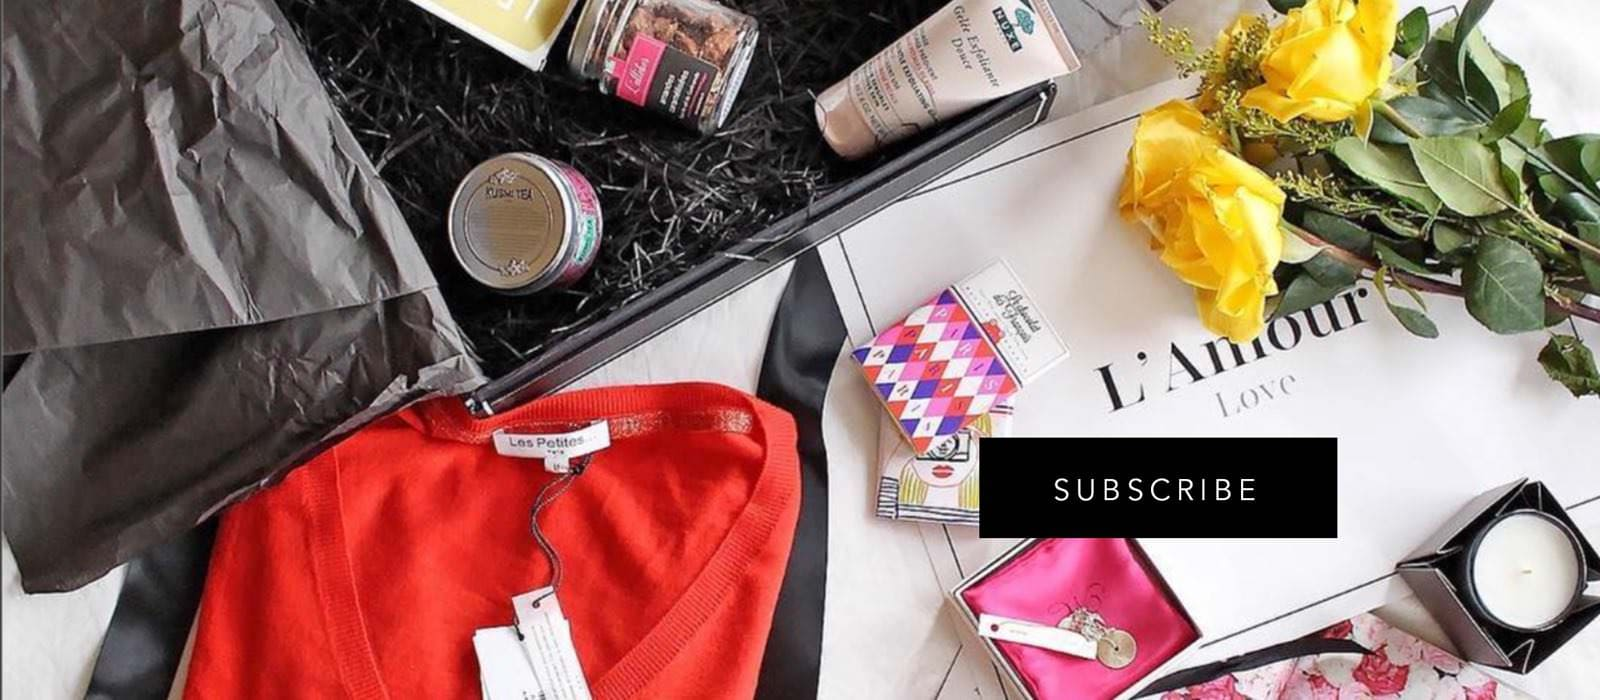 OuiPlease Subscribe L'amour Love French Brands Les Petites Paris Nuxe luxury skincare